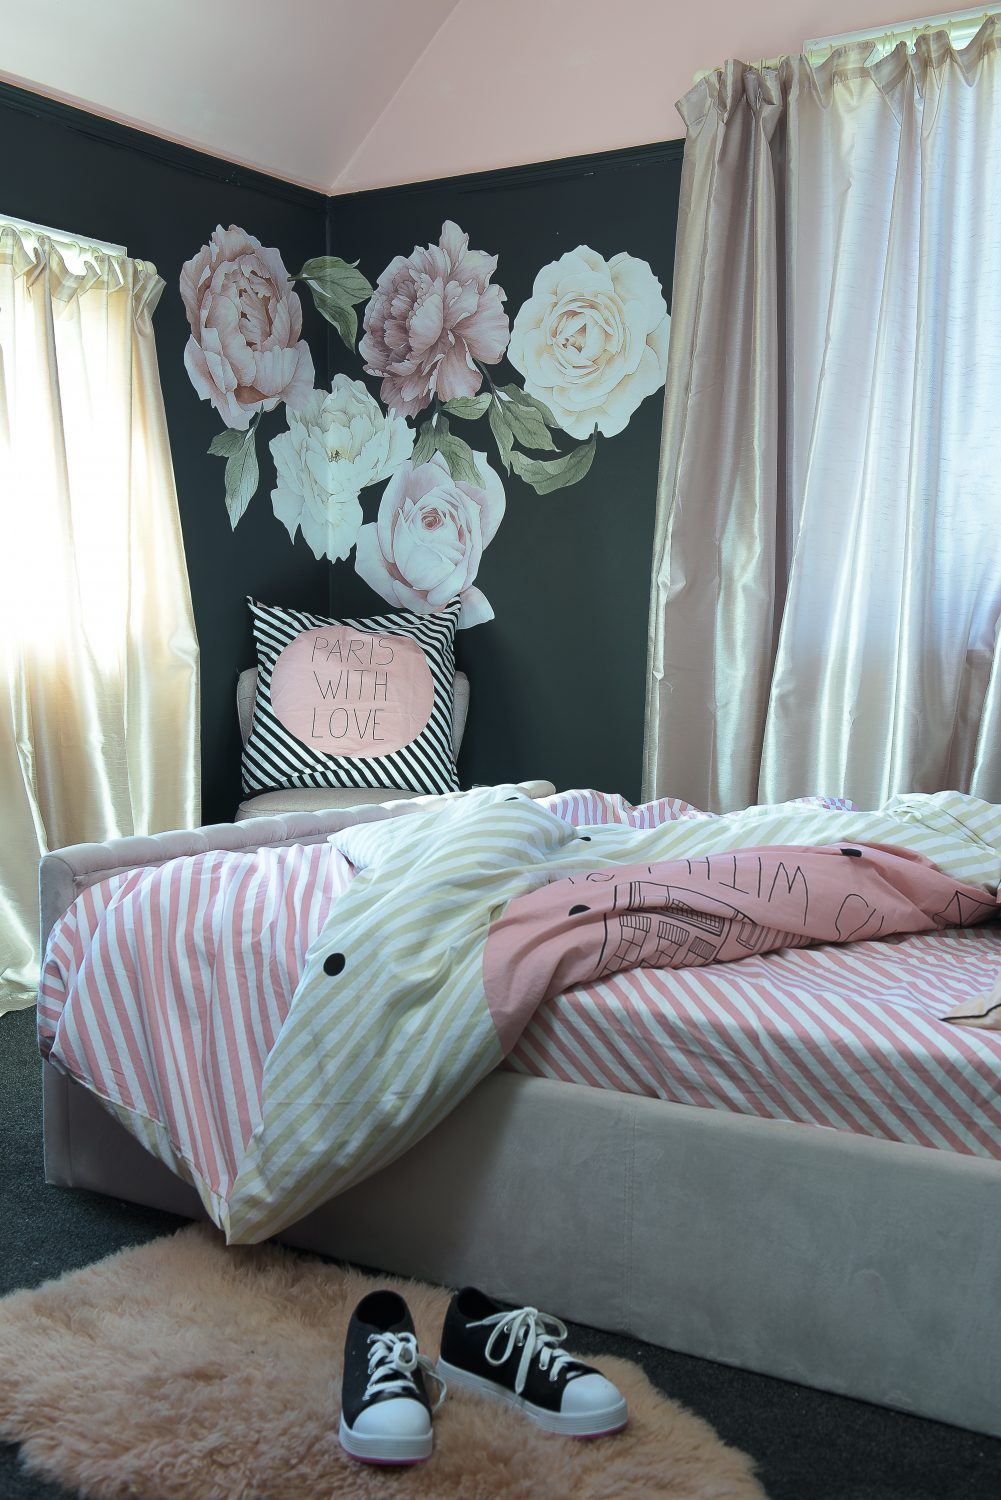 In the couple's eldest daughter's room, the carpets and walls are predominantly black with accents of pink and floor-length satin curtains